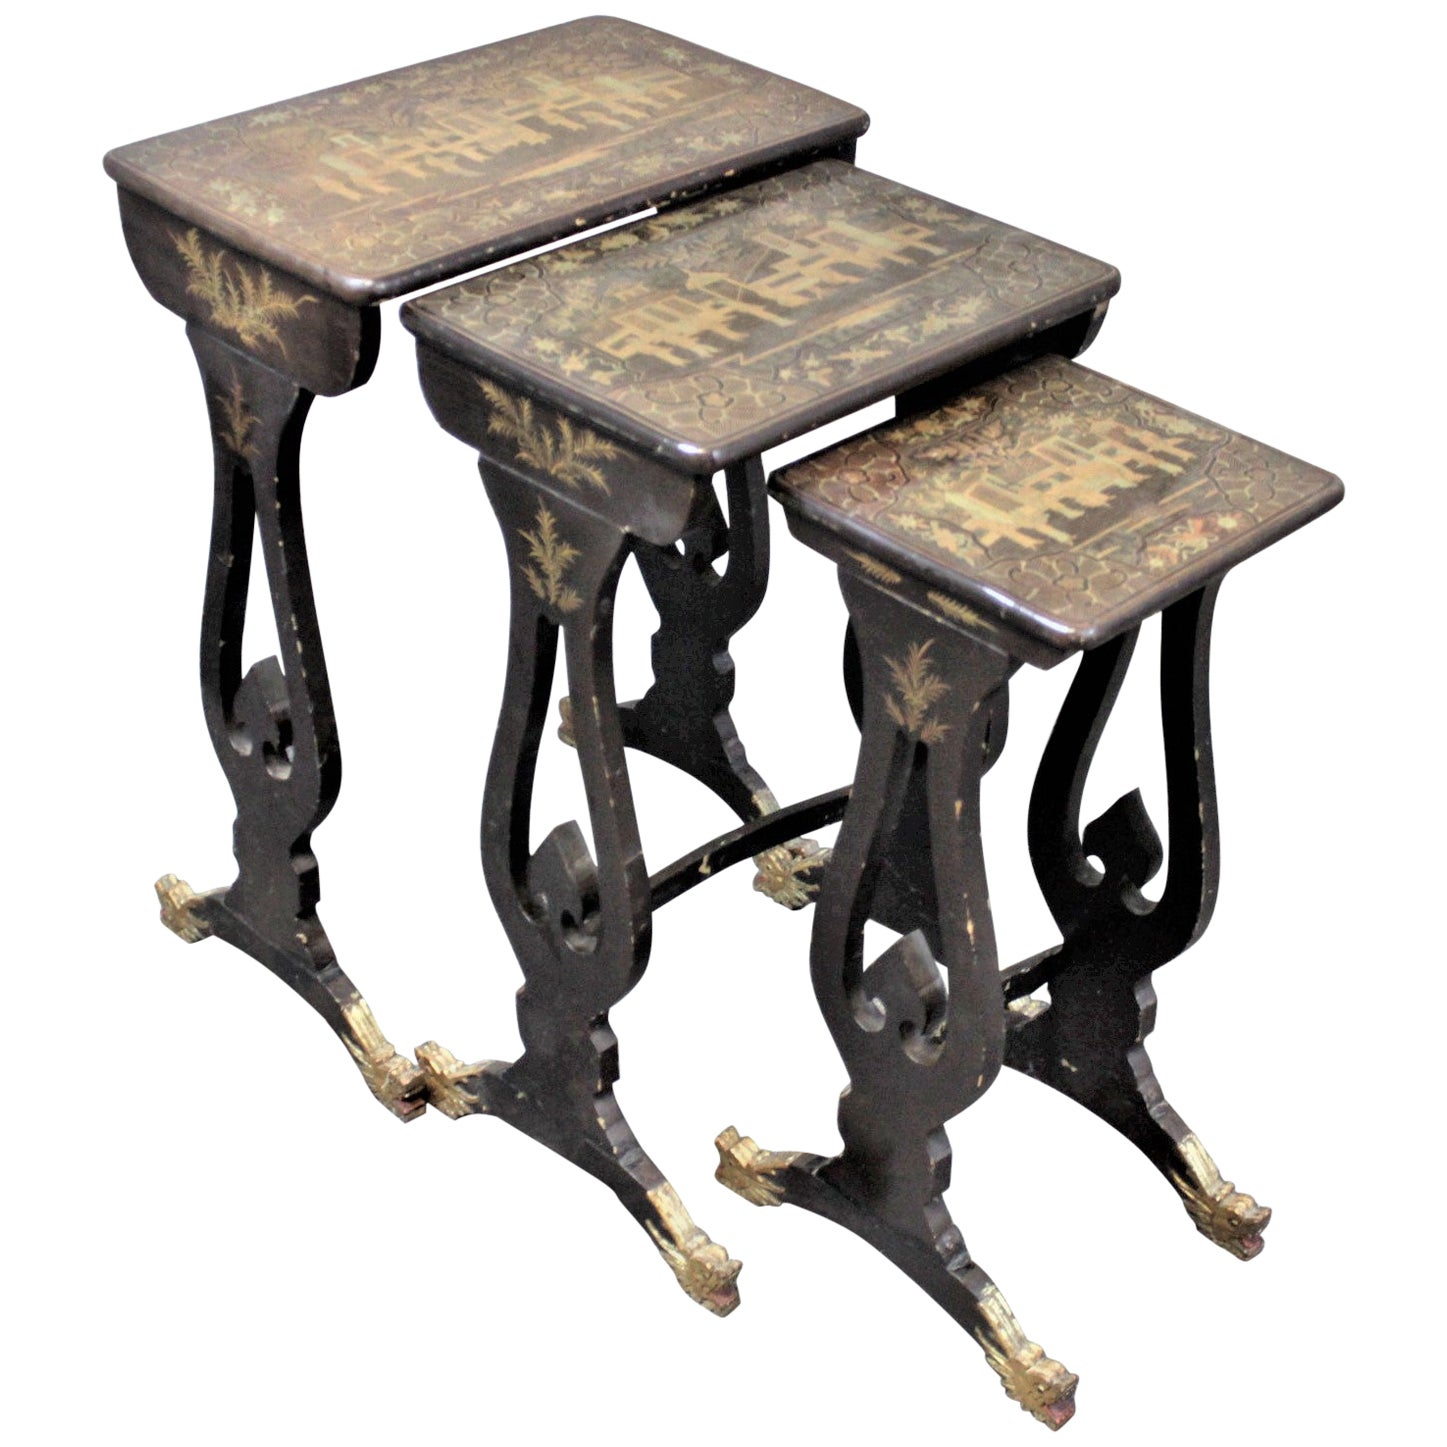 Antique Chinoiserie Black Lacquered Nesting Table Set with Carved Dragon Feet